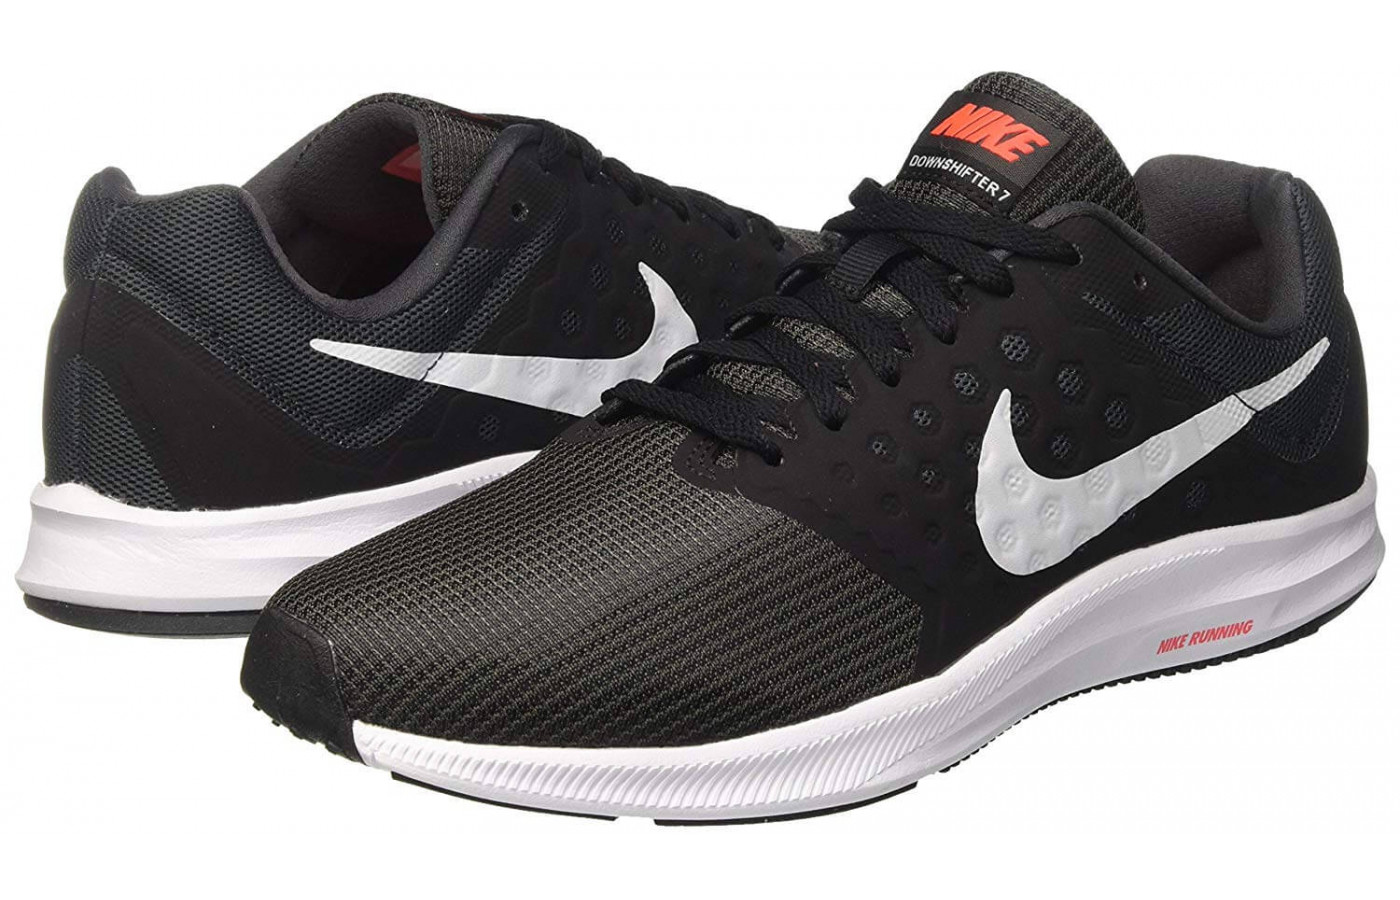 Nike Downshifter 7 Pair